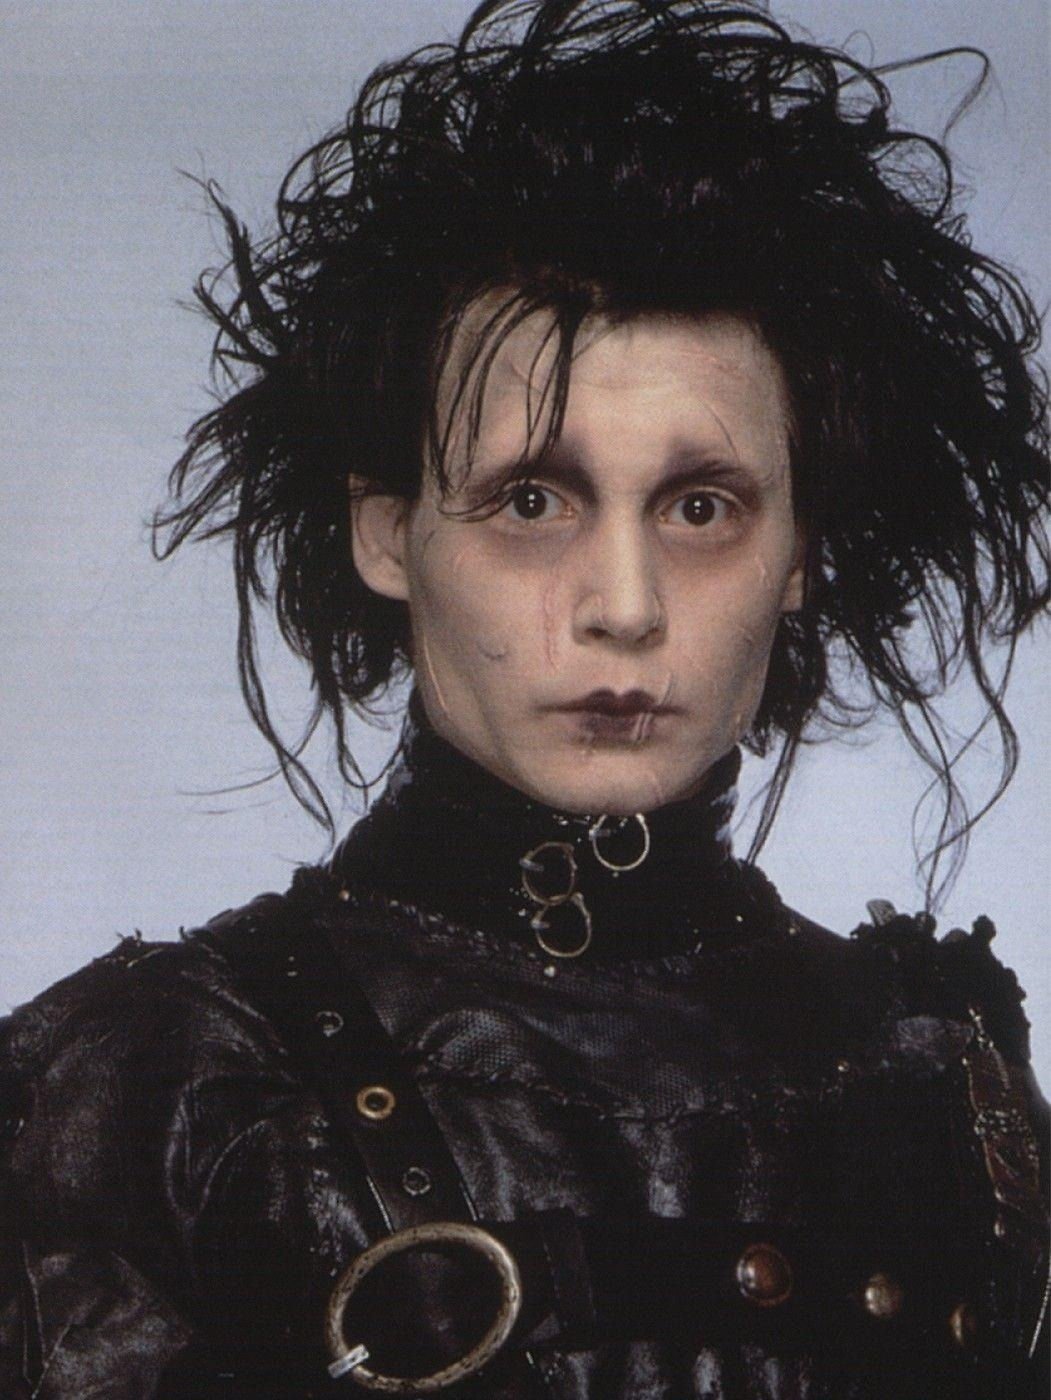 ICONIC HAIR SUNDAY: EDWARD SCISSORHANDS Edward Scissorhands (1990), directed by: Tim Burton